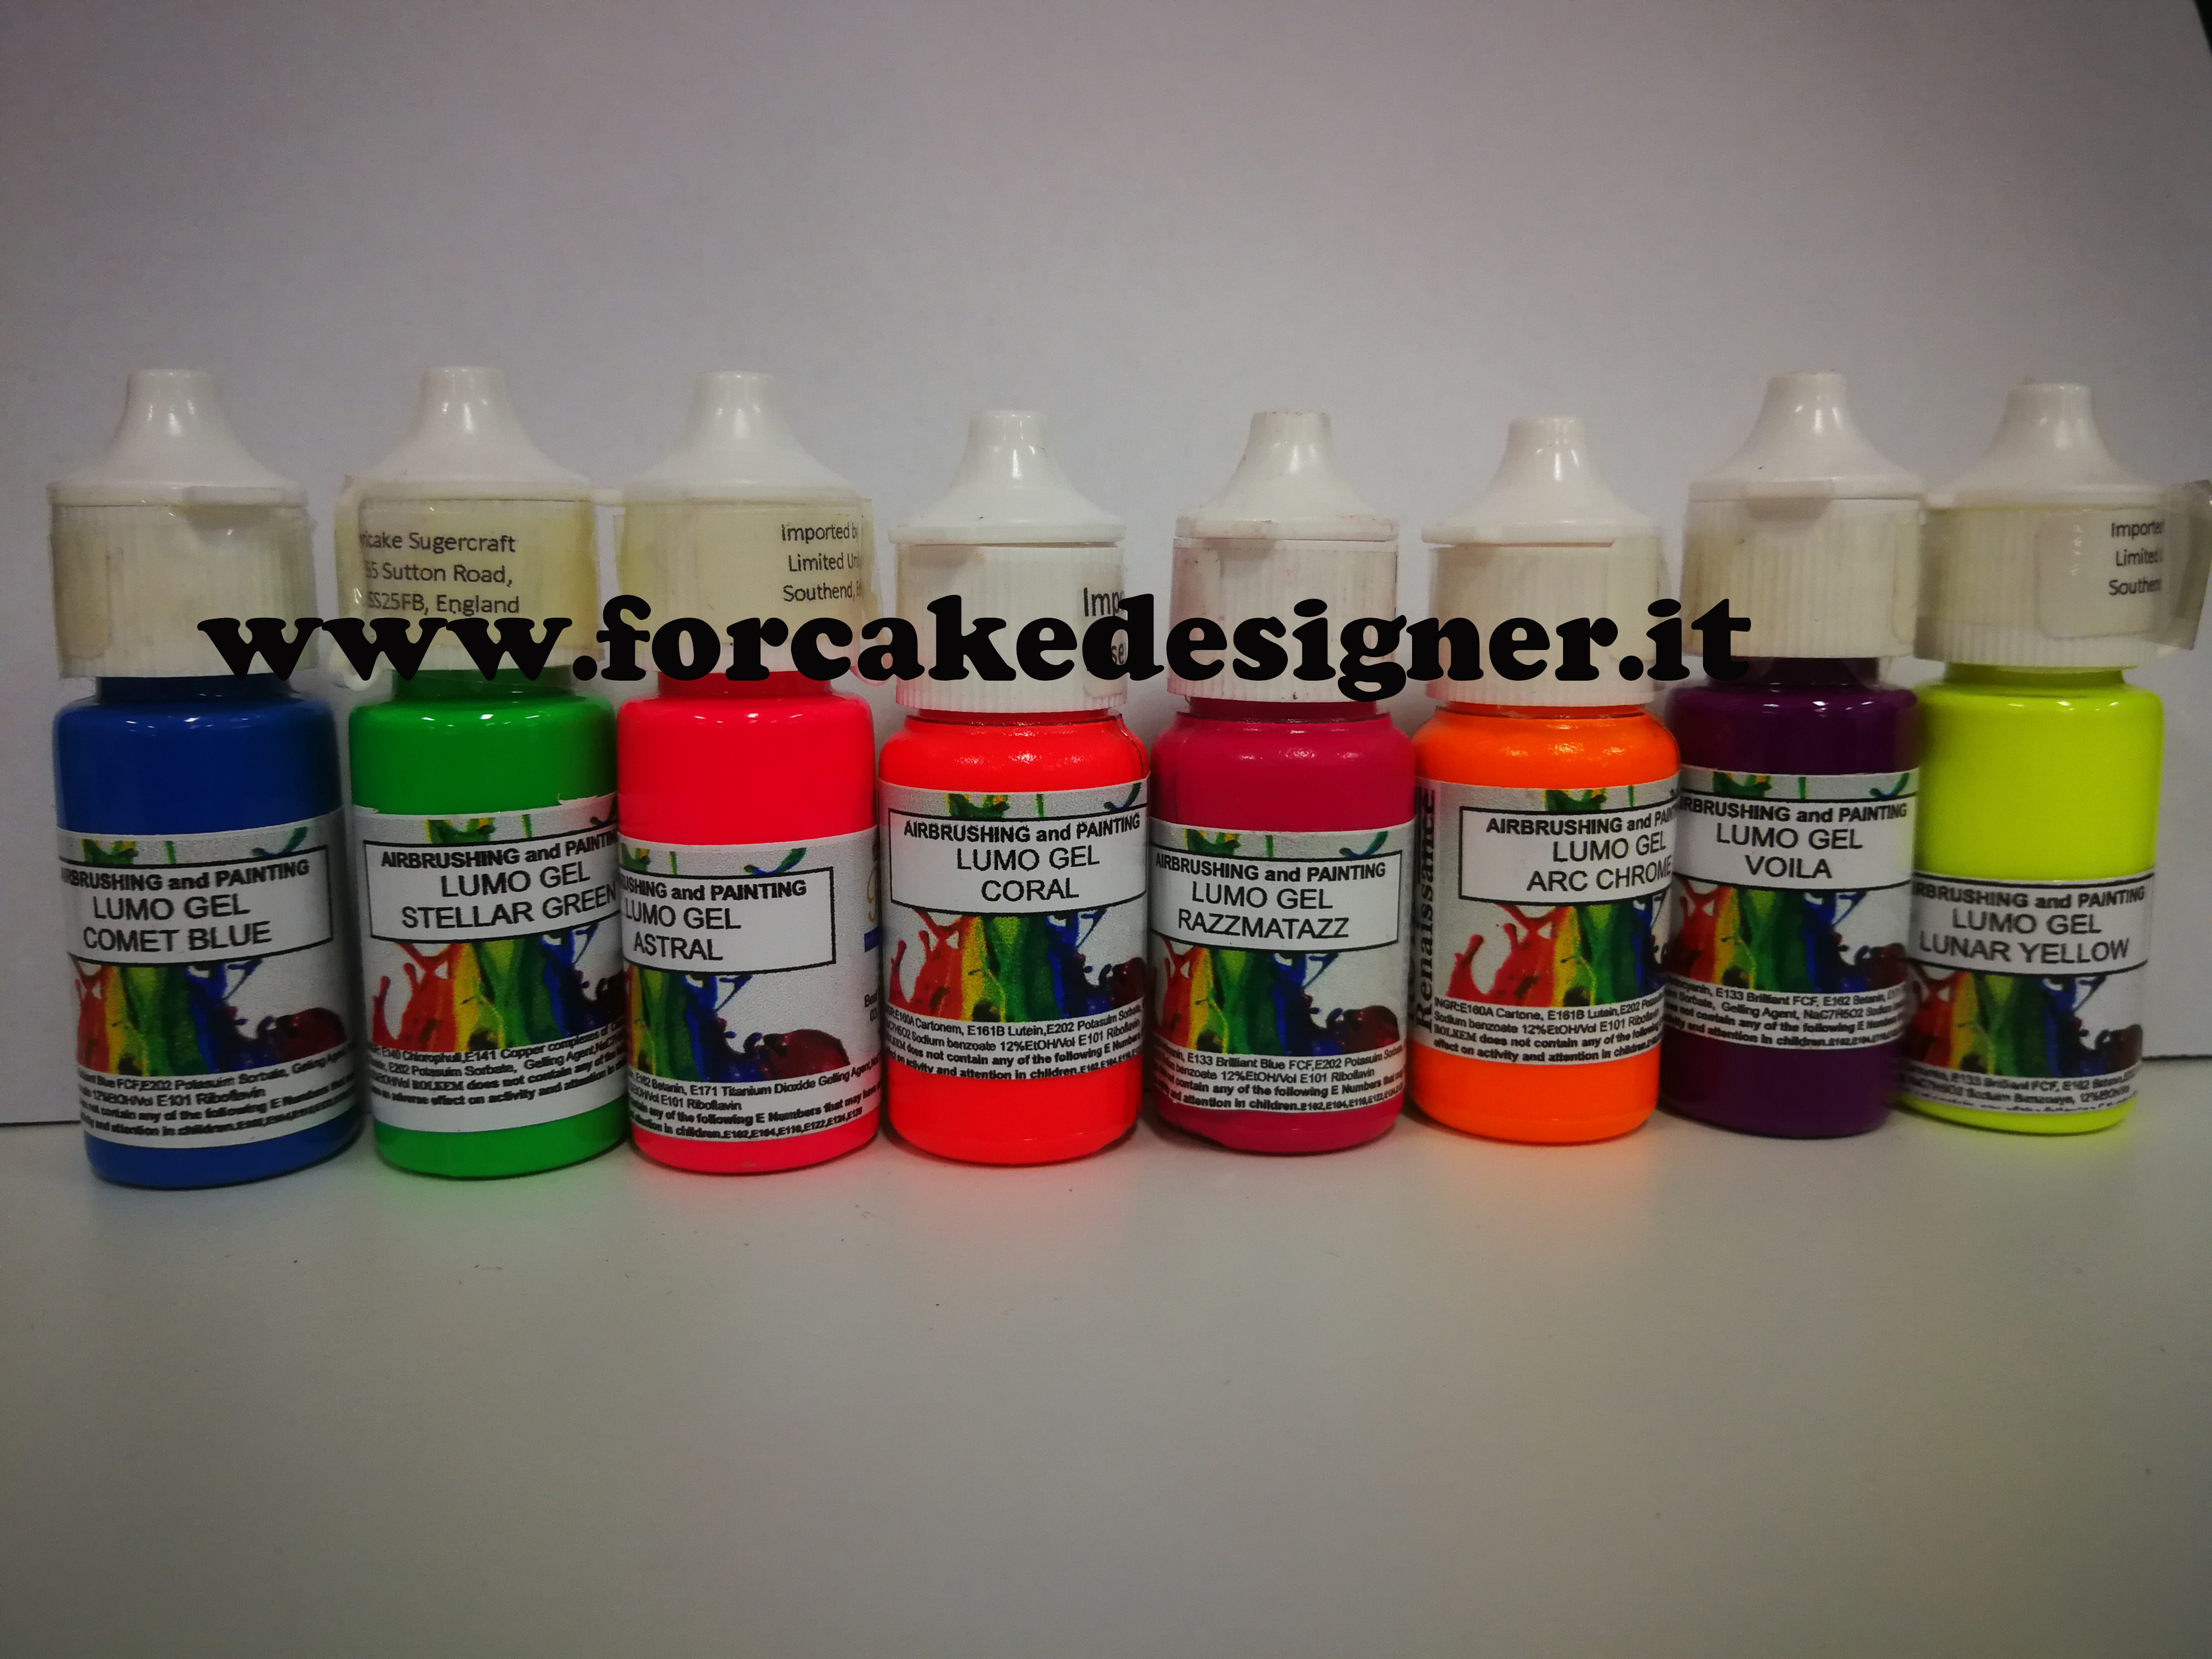 Foto: Rolkem - Lumo Gel Airbrushing and painting Coral 15 ml